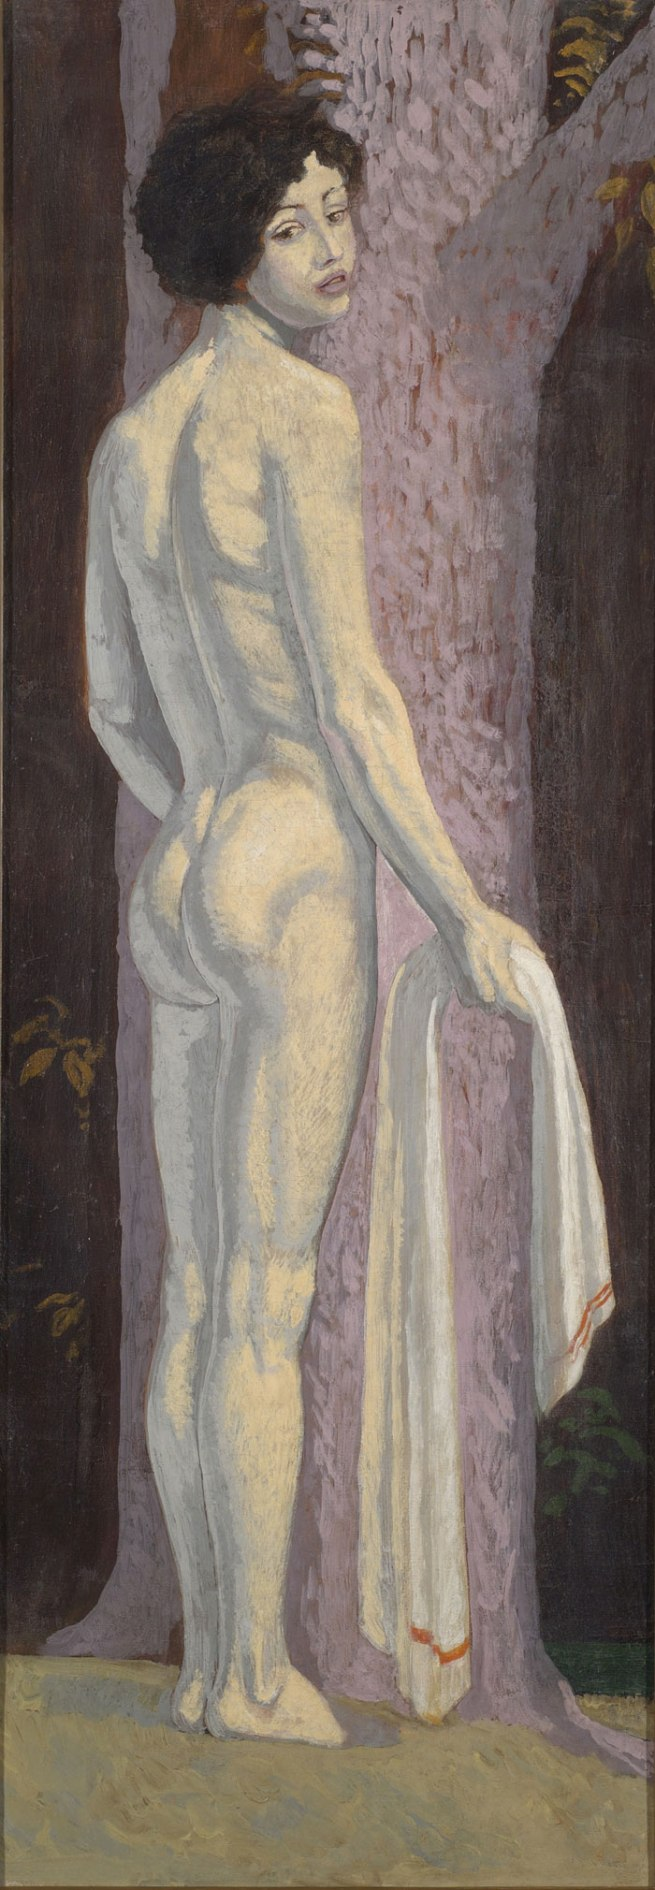 Sascha Schneider. 'Rear View of Nude with Towel' c. 1920